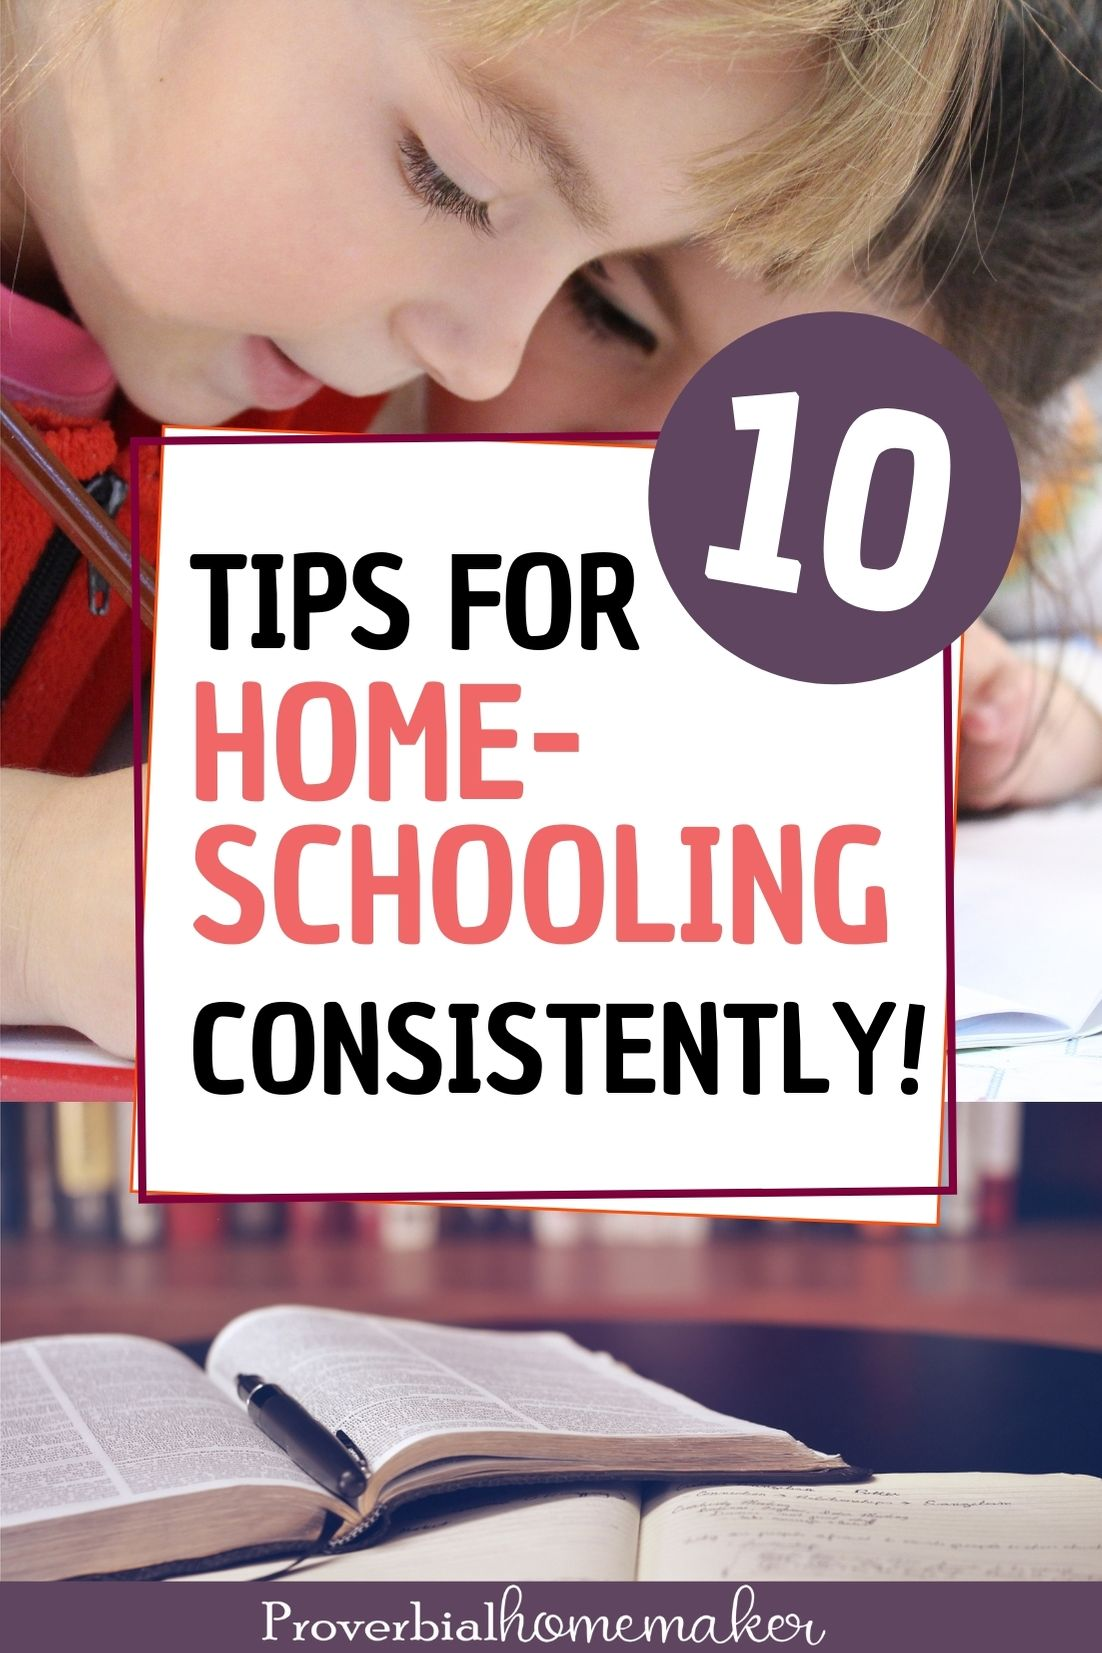 Homeschooling is such a blessing and a worthwhile investment in our children's education. But it can be a challenge to homeschool consistently! Here are 10 tips that work for any stage of your homeschool journey.